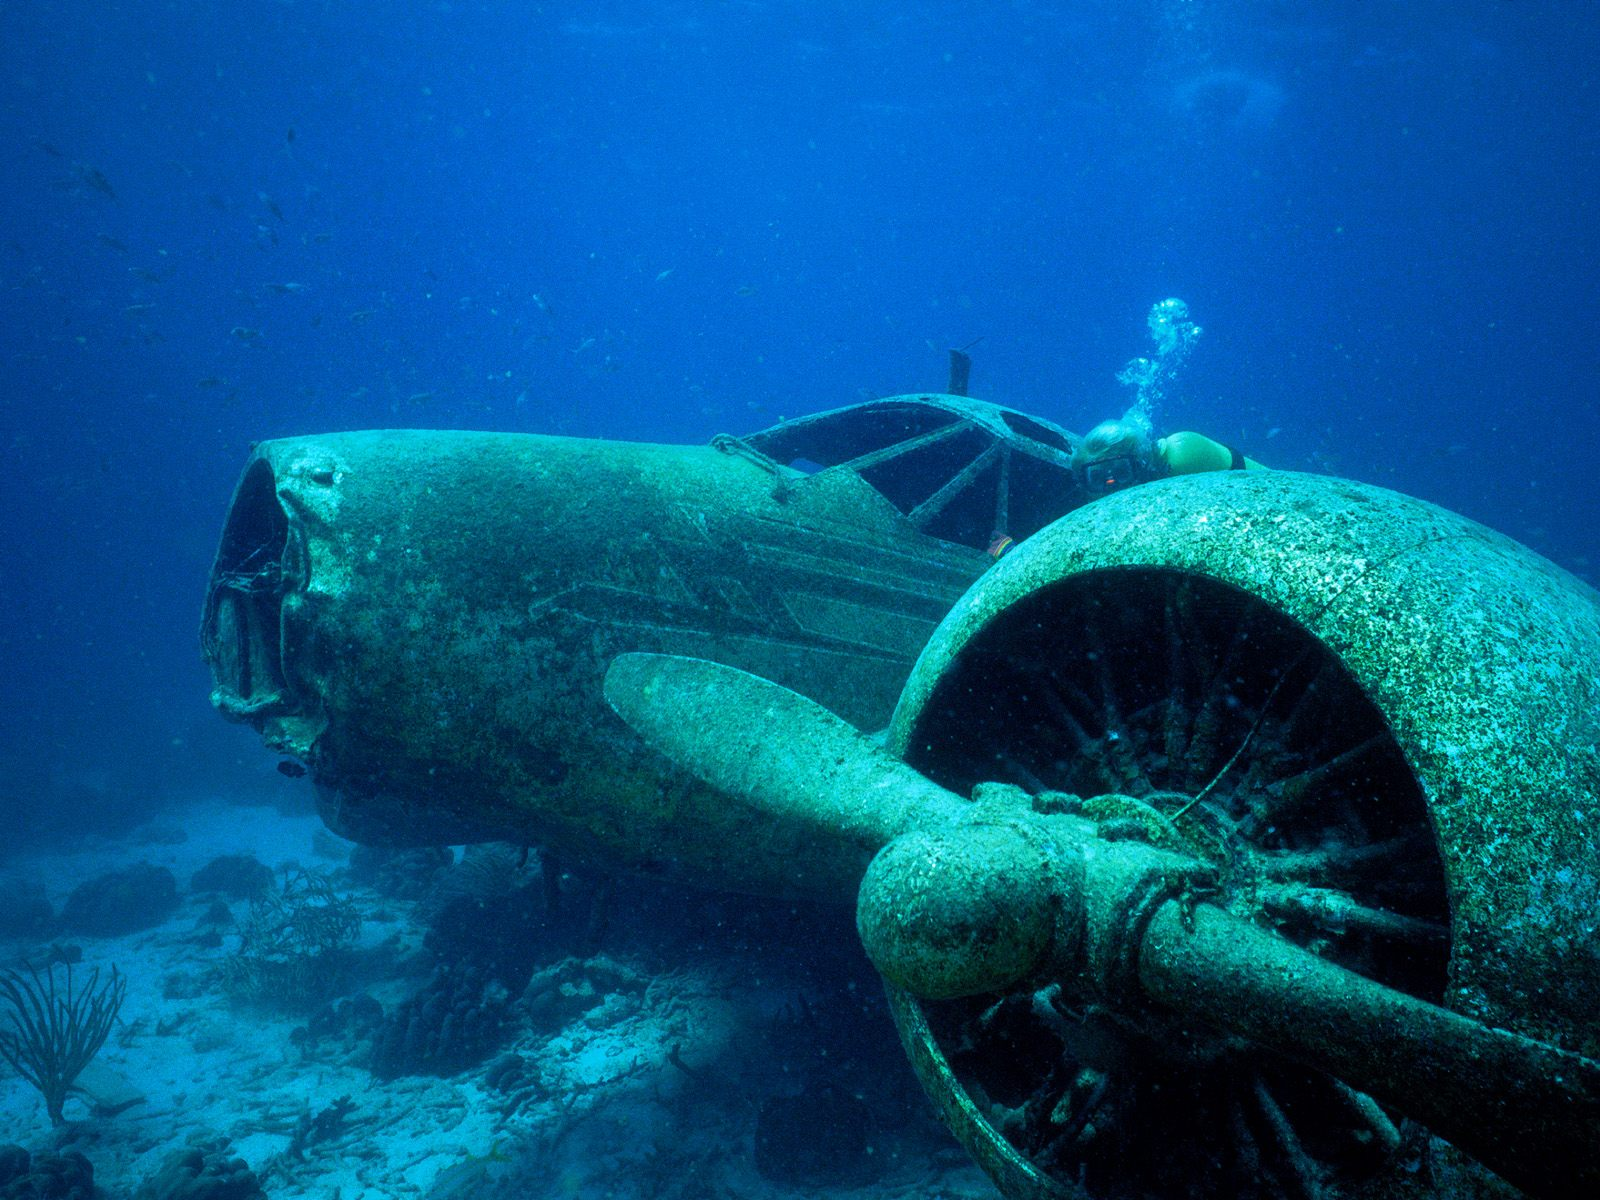 http://3.bp.blogspot.com/-ueOu88CL9FQ/TxgsxRdKHZI/AAAAAAAADsI/3pG3LwZX8oY/s1600/airplanes_crash_wrecks_underwater_airplane_wreck_diving_disaster_desktop_1600x1200_wallpaper-177768.jpeg